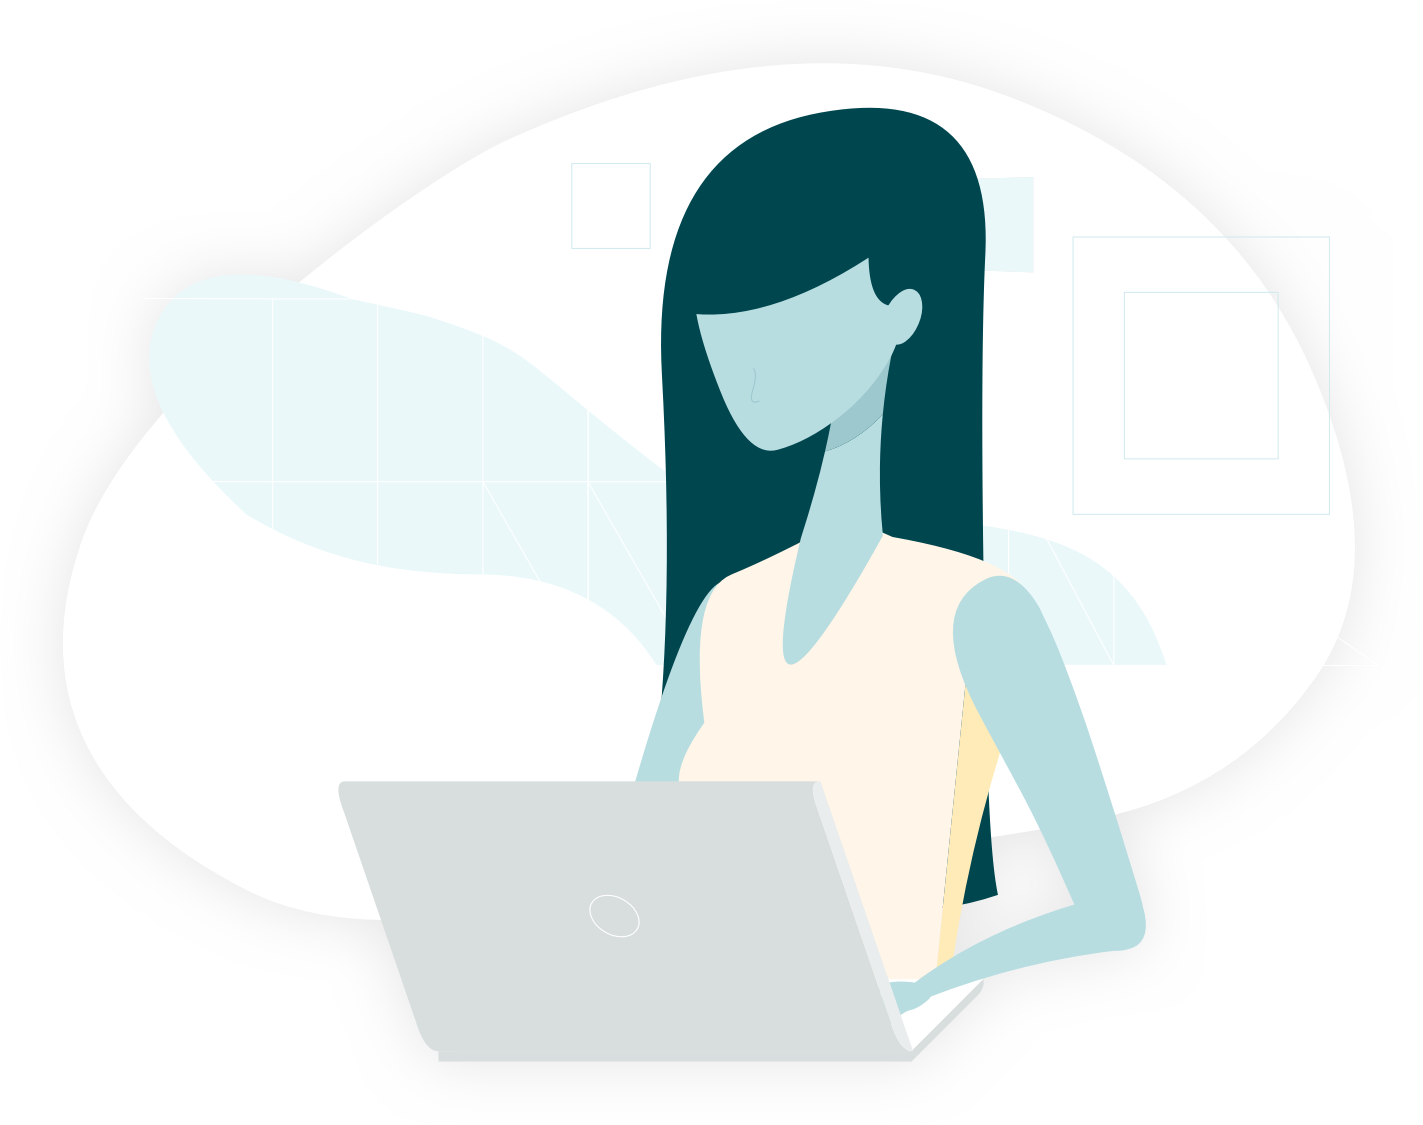 illustration of a woman working on her laptop